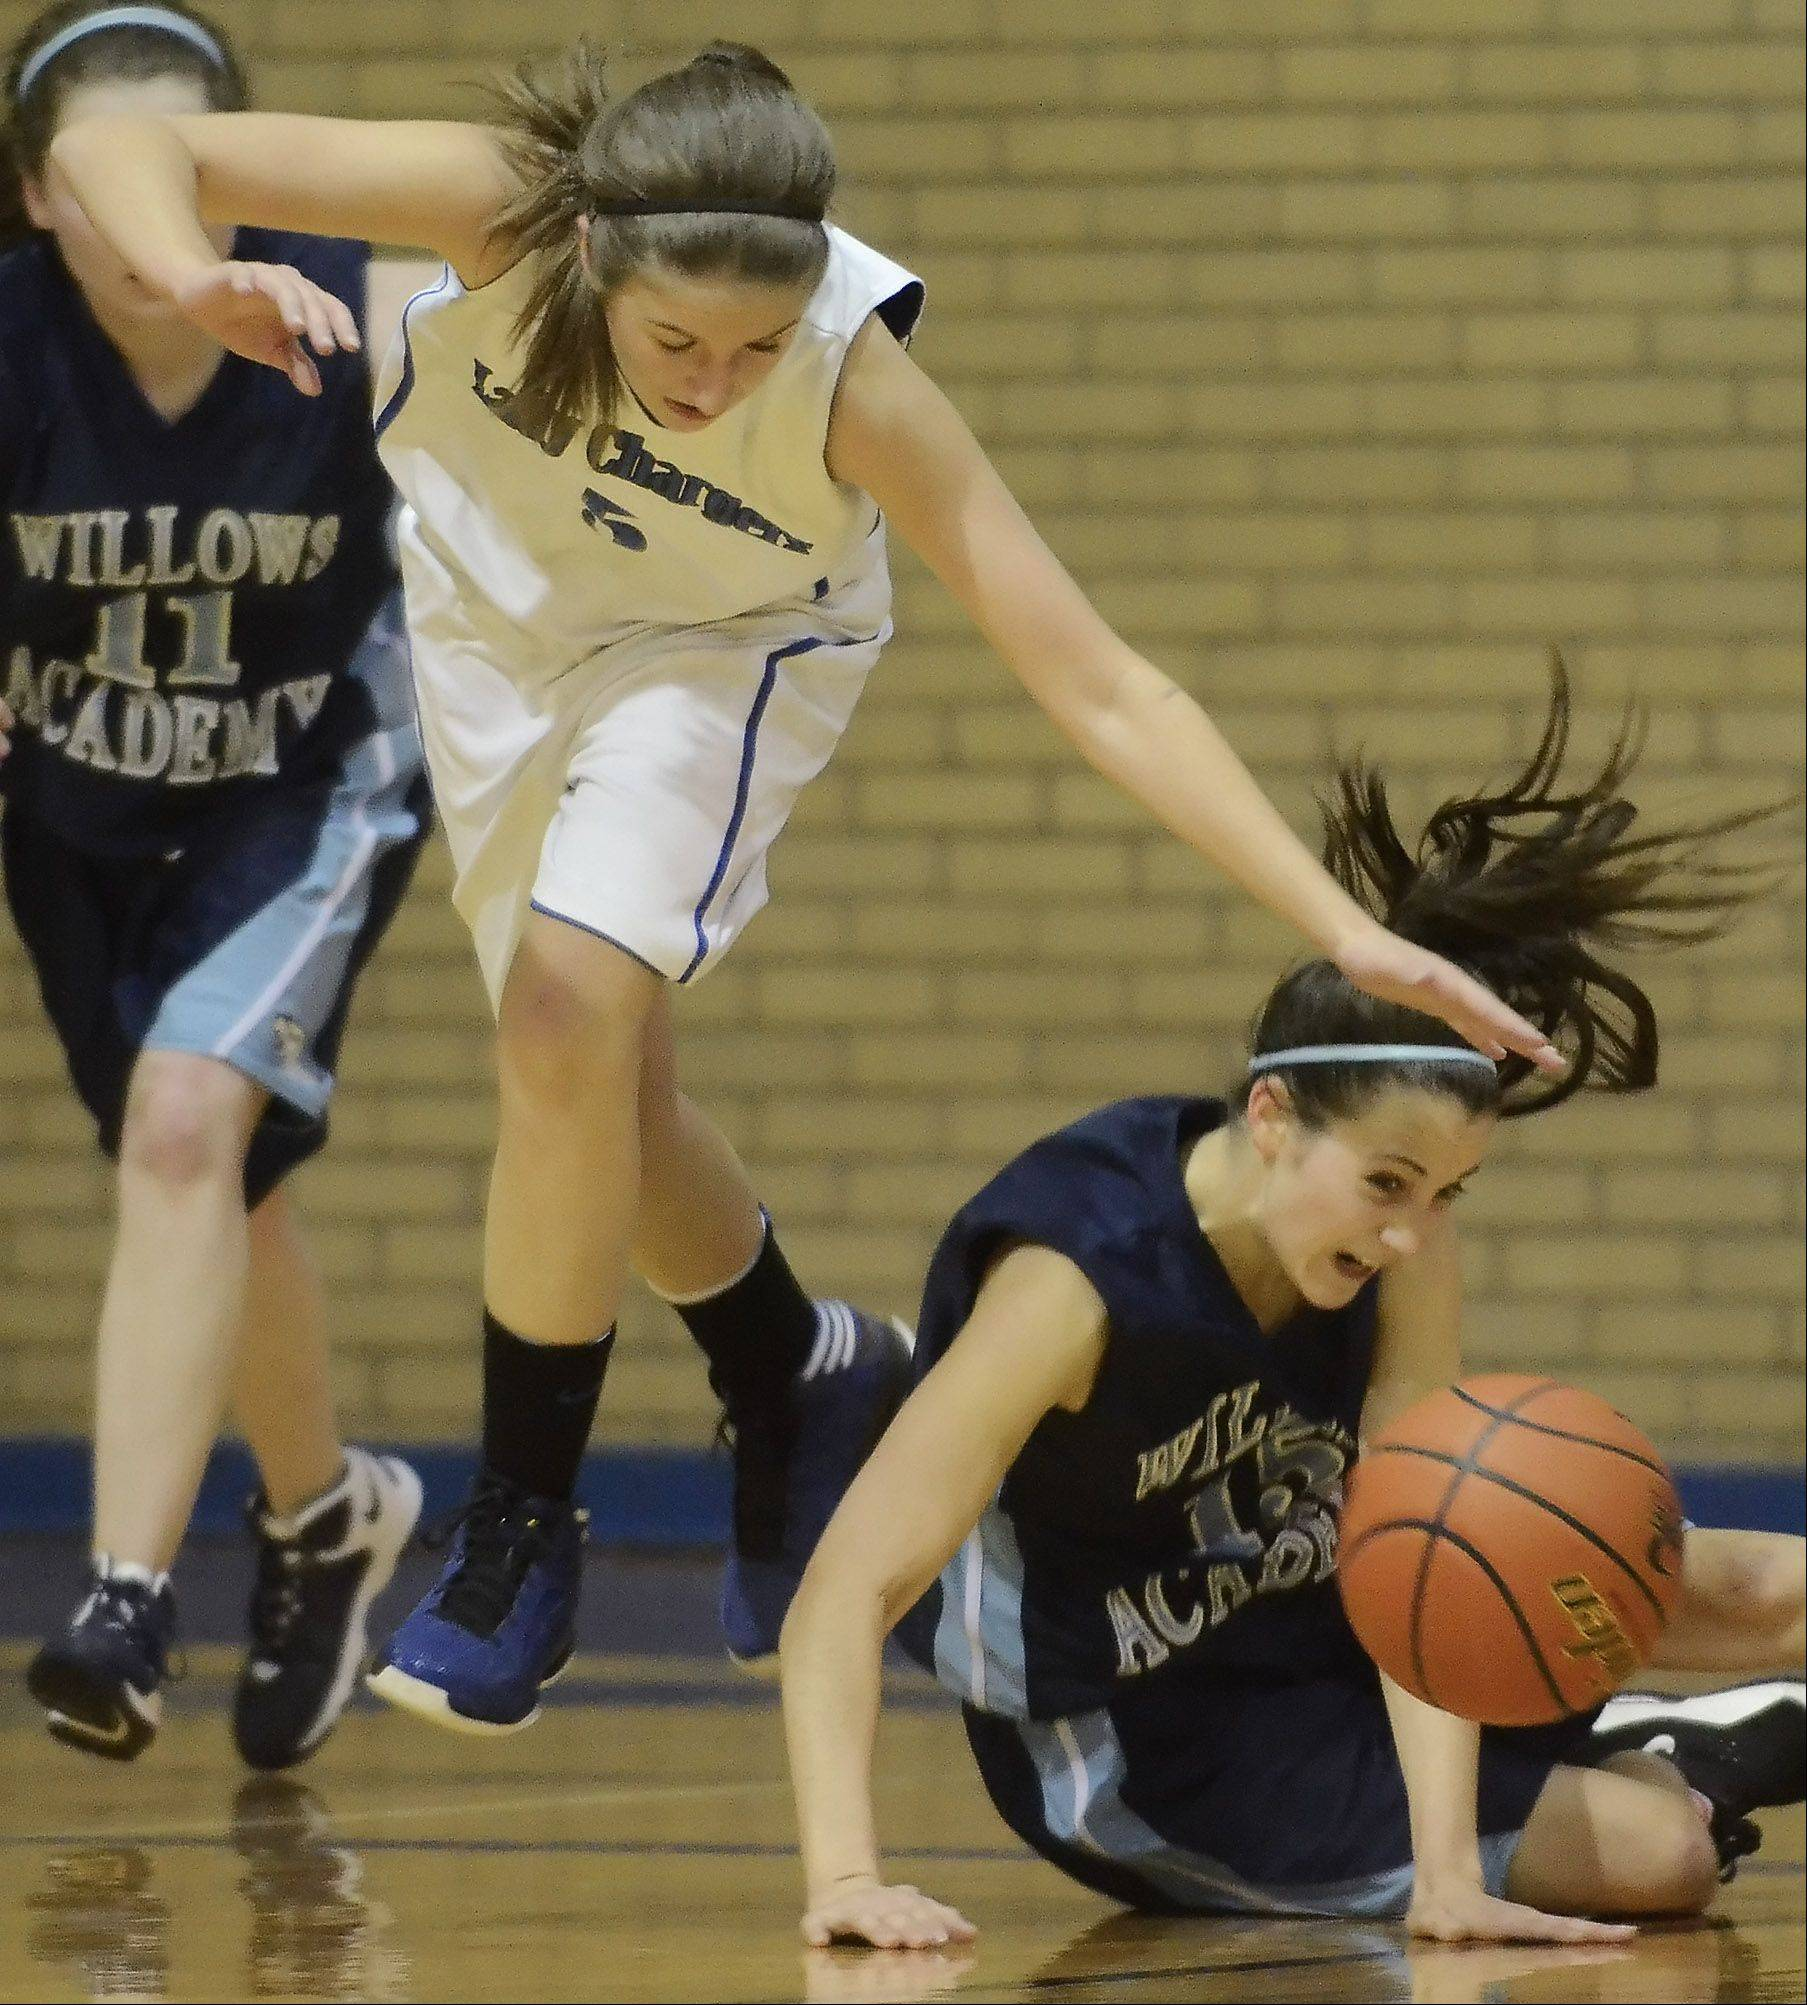 Jessica Moriarty, left, tries to control the ball as Keelin McNally of Willows Academy falls to the floor during Wednesday's game.